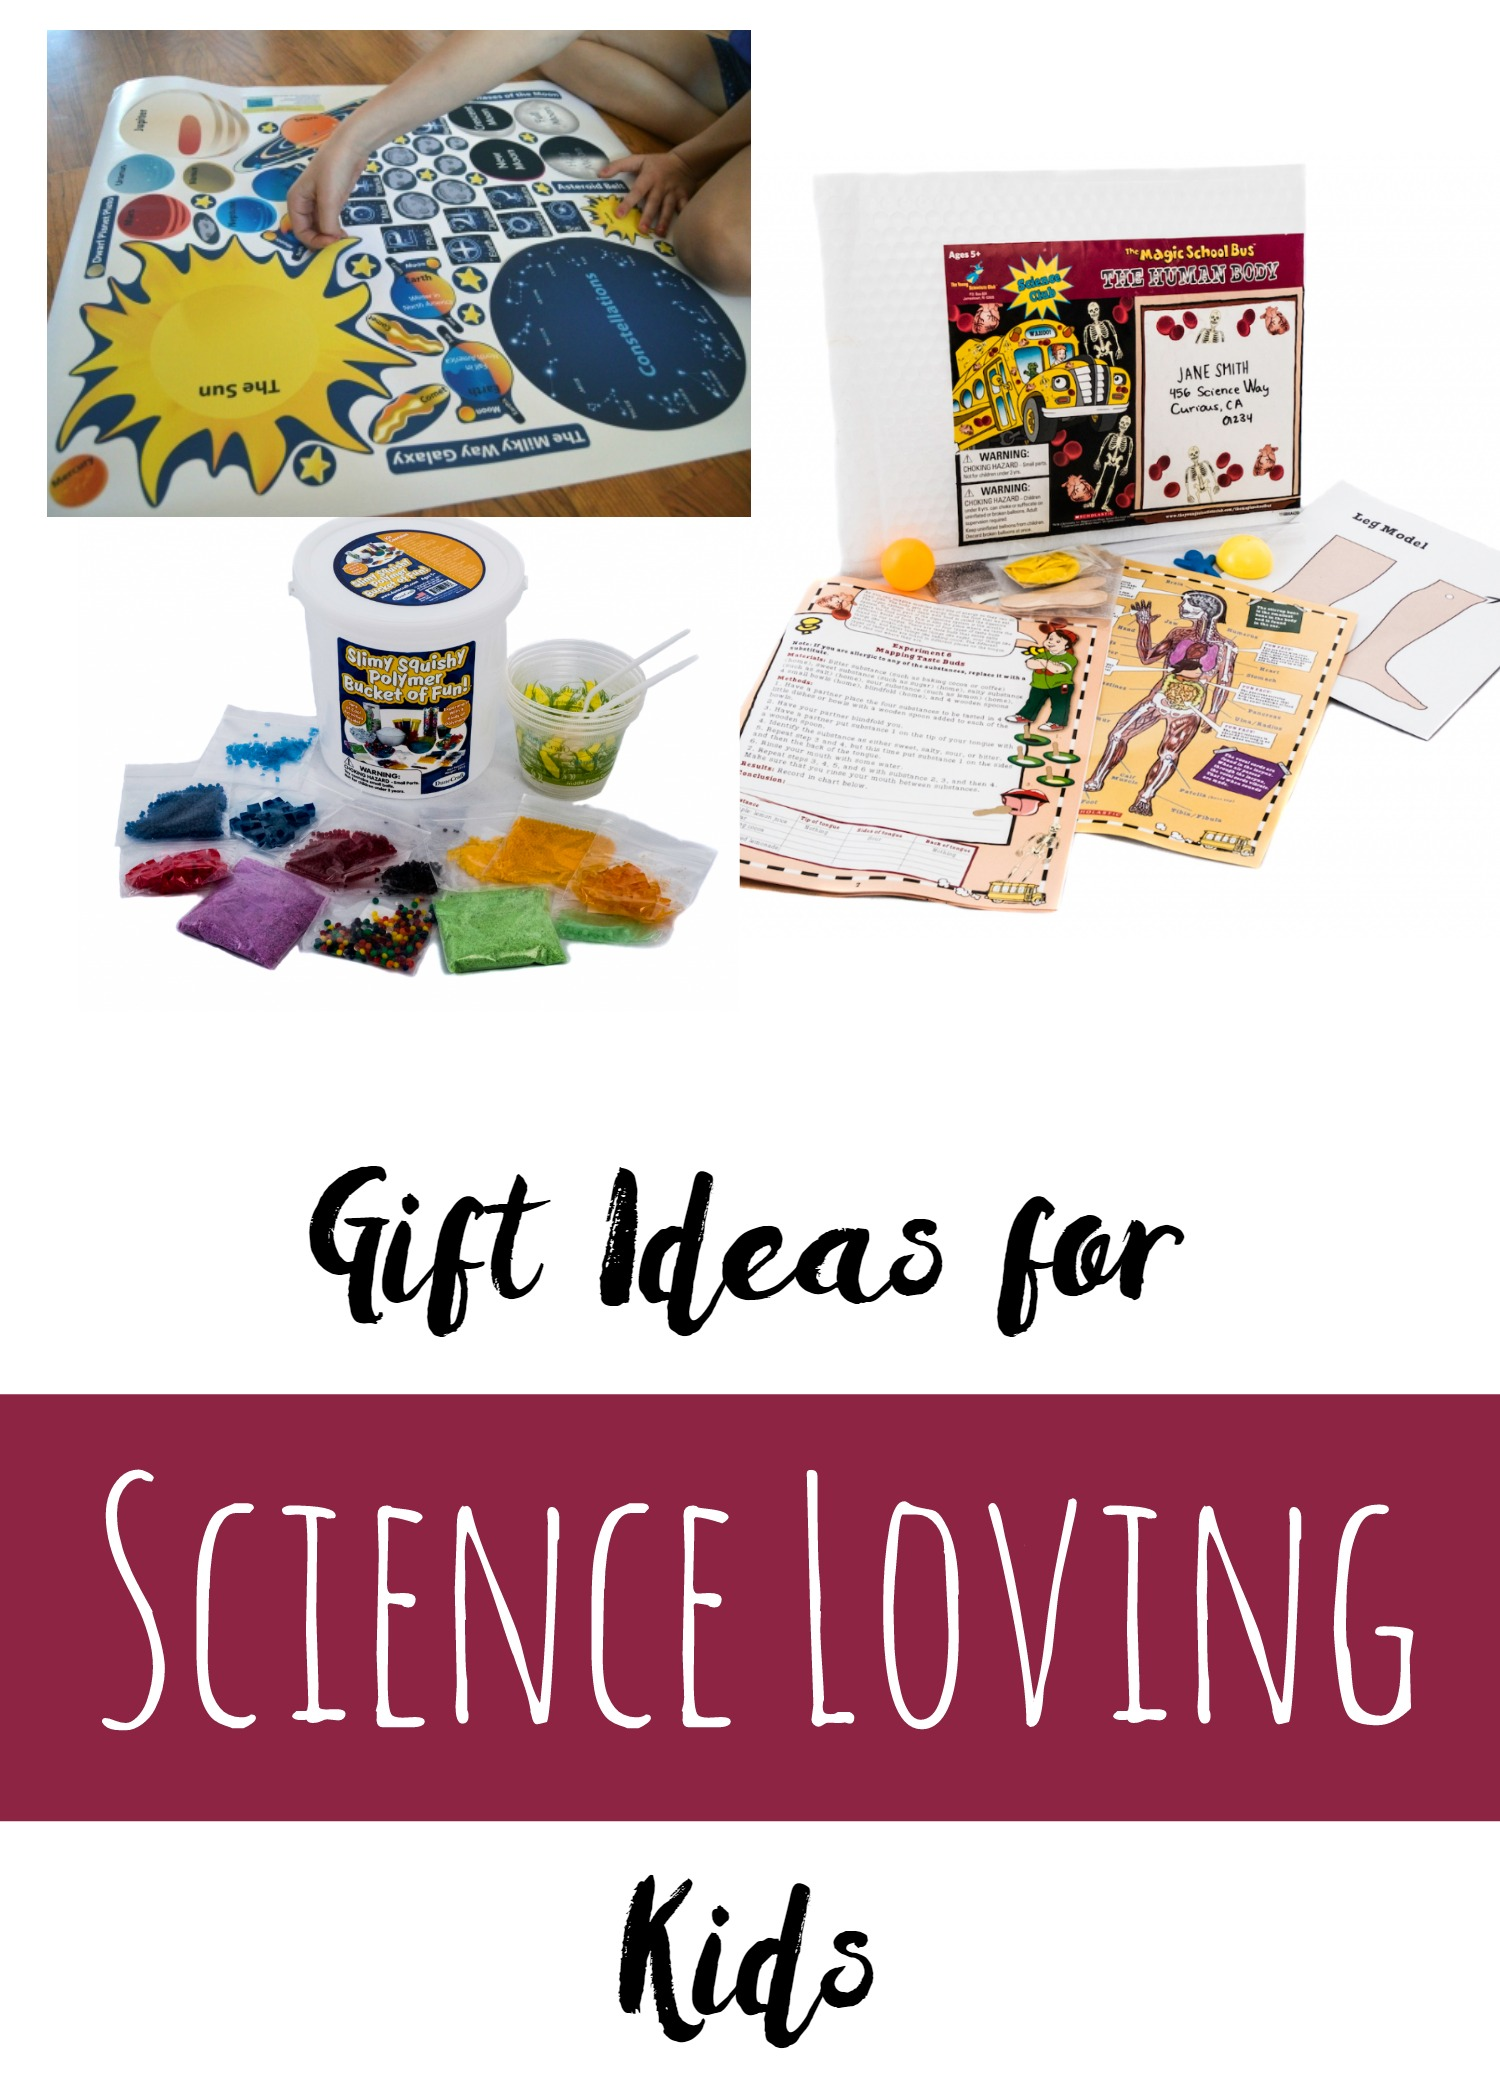 Gift Ideas for Science Loving Kids Christian Homeschool Family